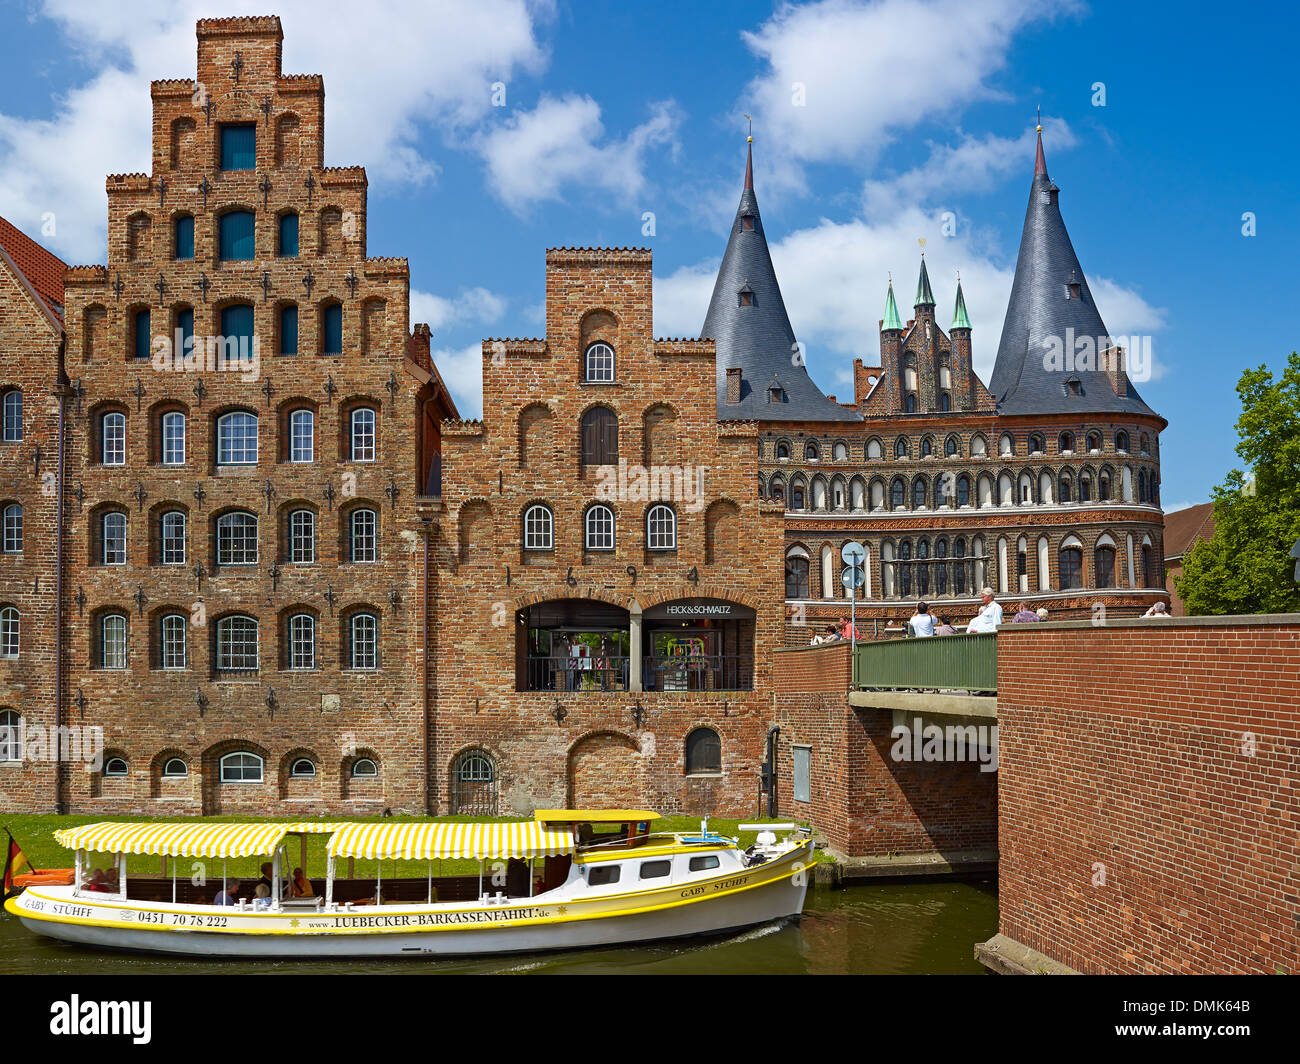 Warehouses and Holsten Gate, Hanseatic city of Lübeck, Schleswig-Holstein, Germany - Stock Image